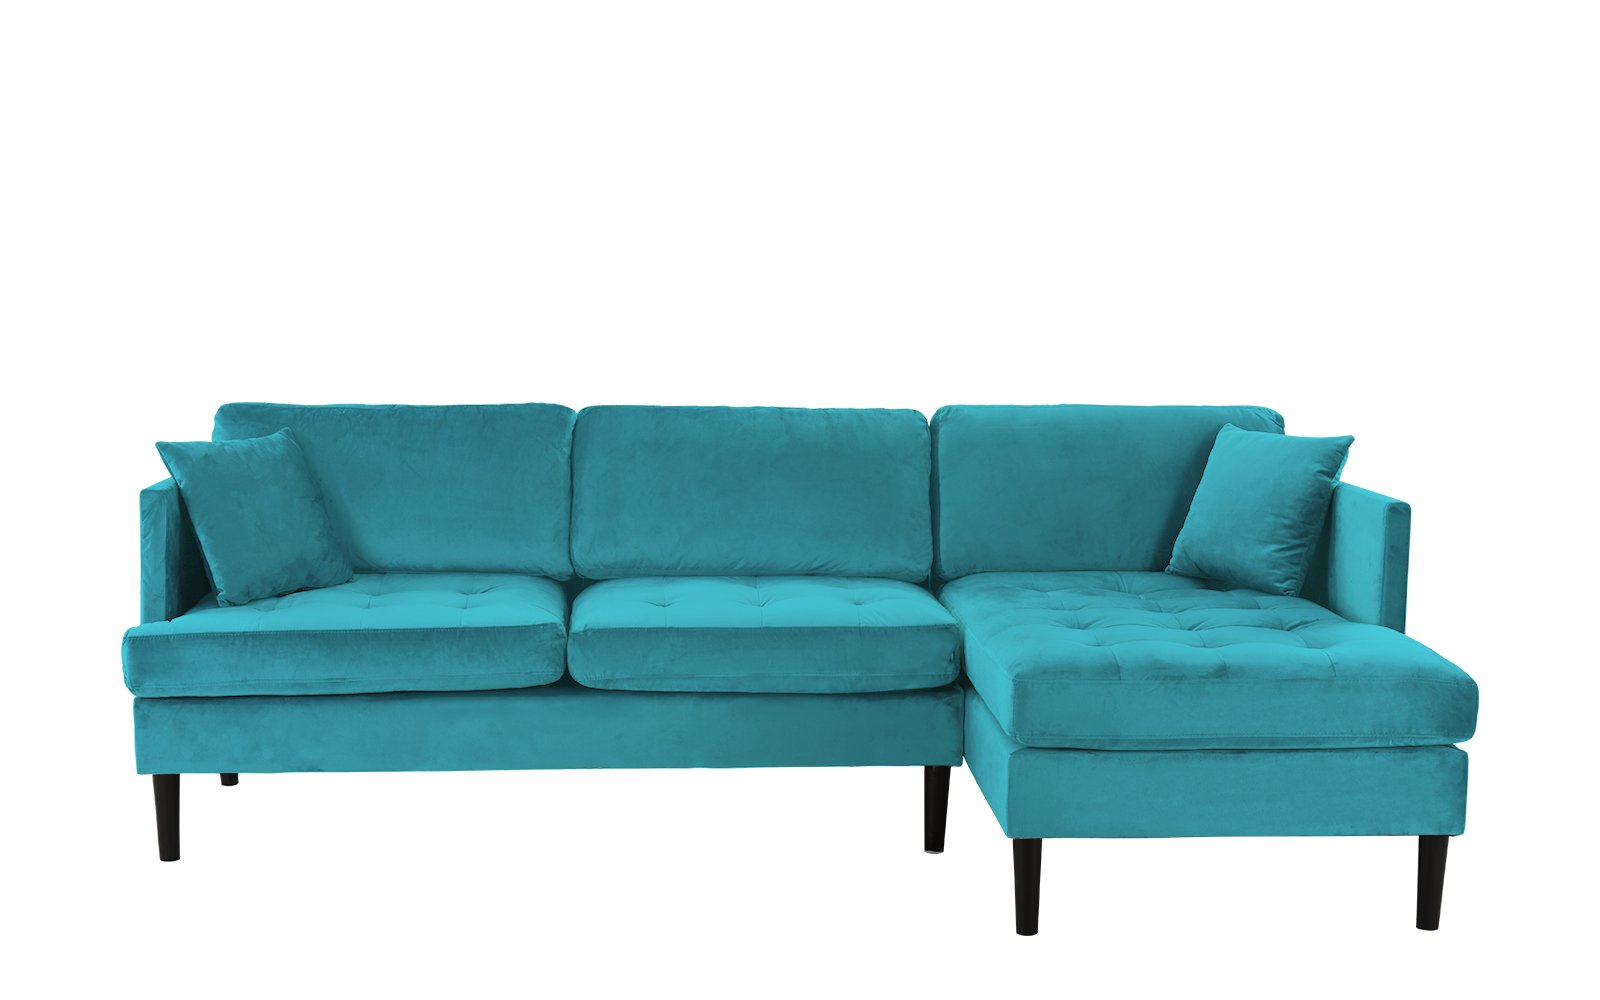 Mid Century Modern Tufted Velvet Sectional Sofa, Classic L Intended For Dulce Mid Century Chaise Sofas Dark Blue (View 1 of 15)